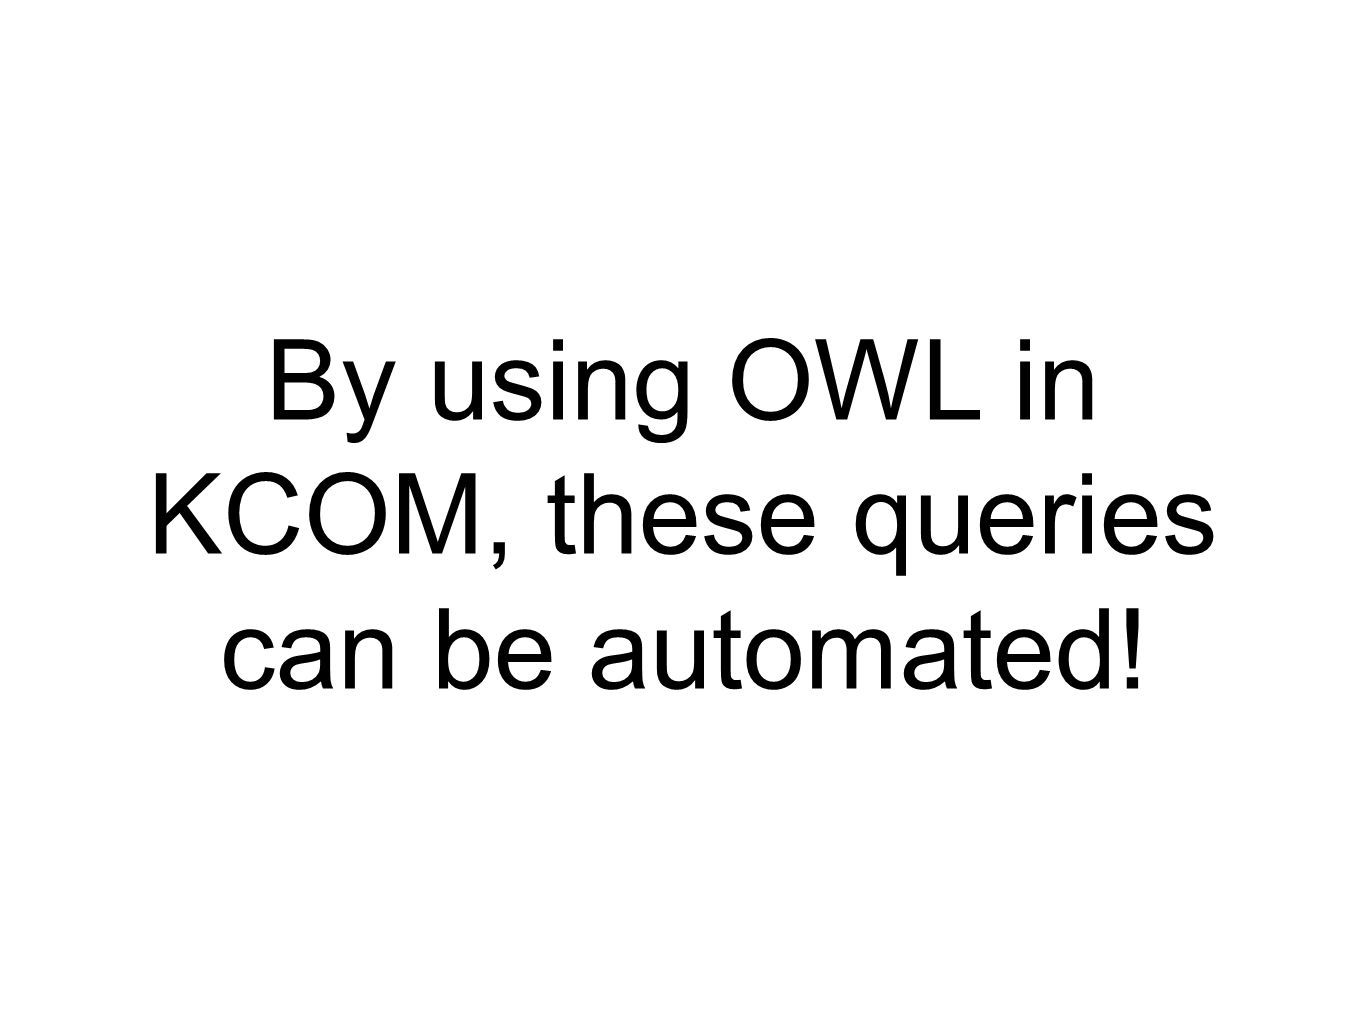 By using OWL in KCOM, these queries can be automated!